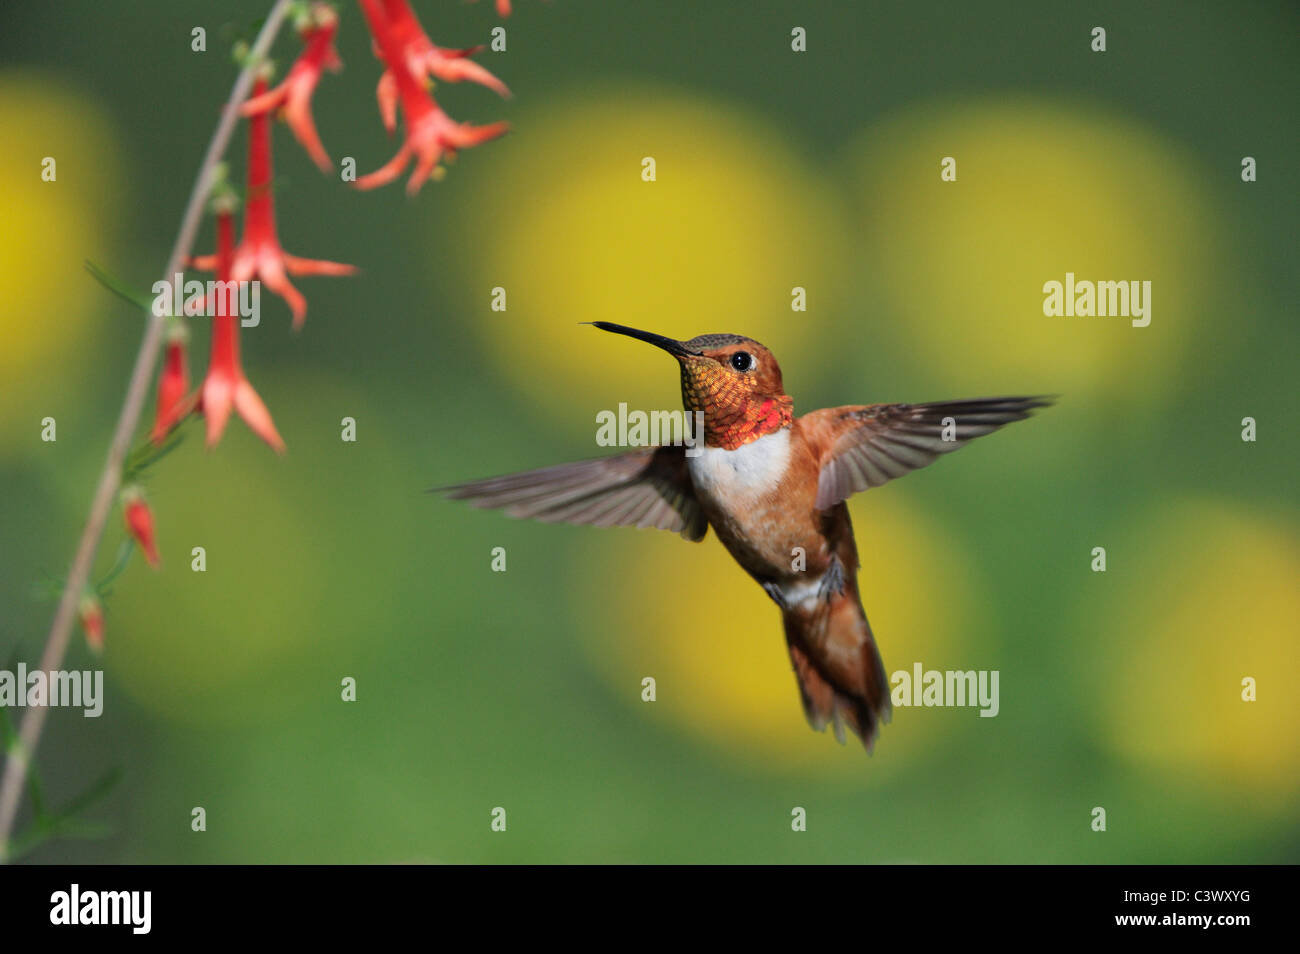 Rufous Hummingbird (Selasphorus rufus), male in flight feeding on Scarlet Gilia (Ipomopsis aggregata), New Mexico - Stock Image